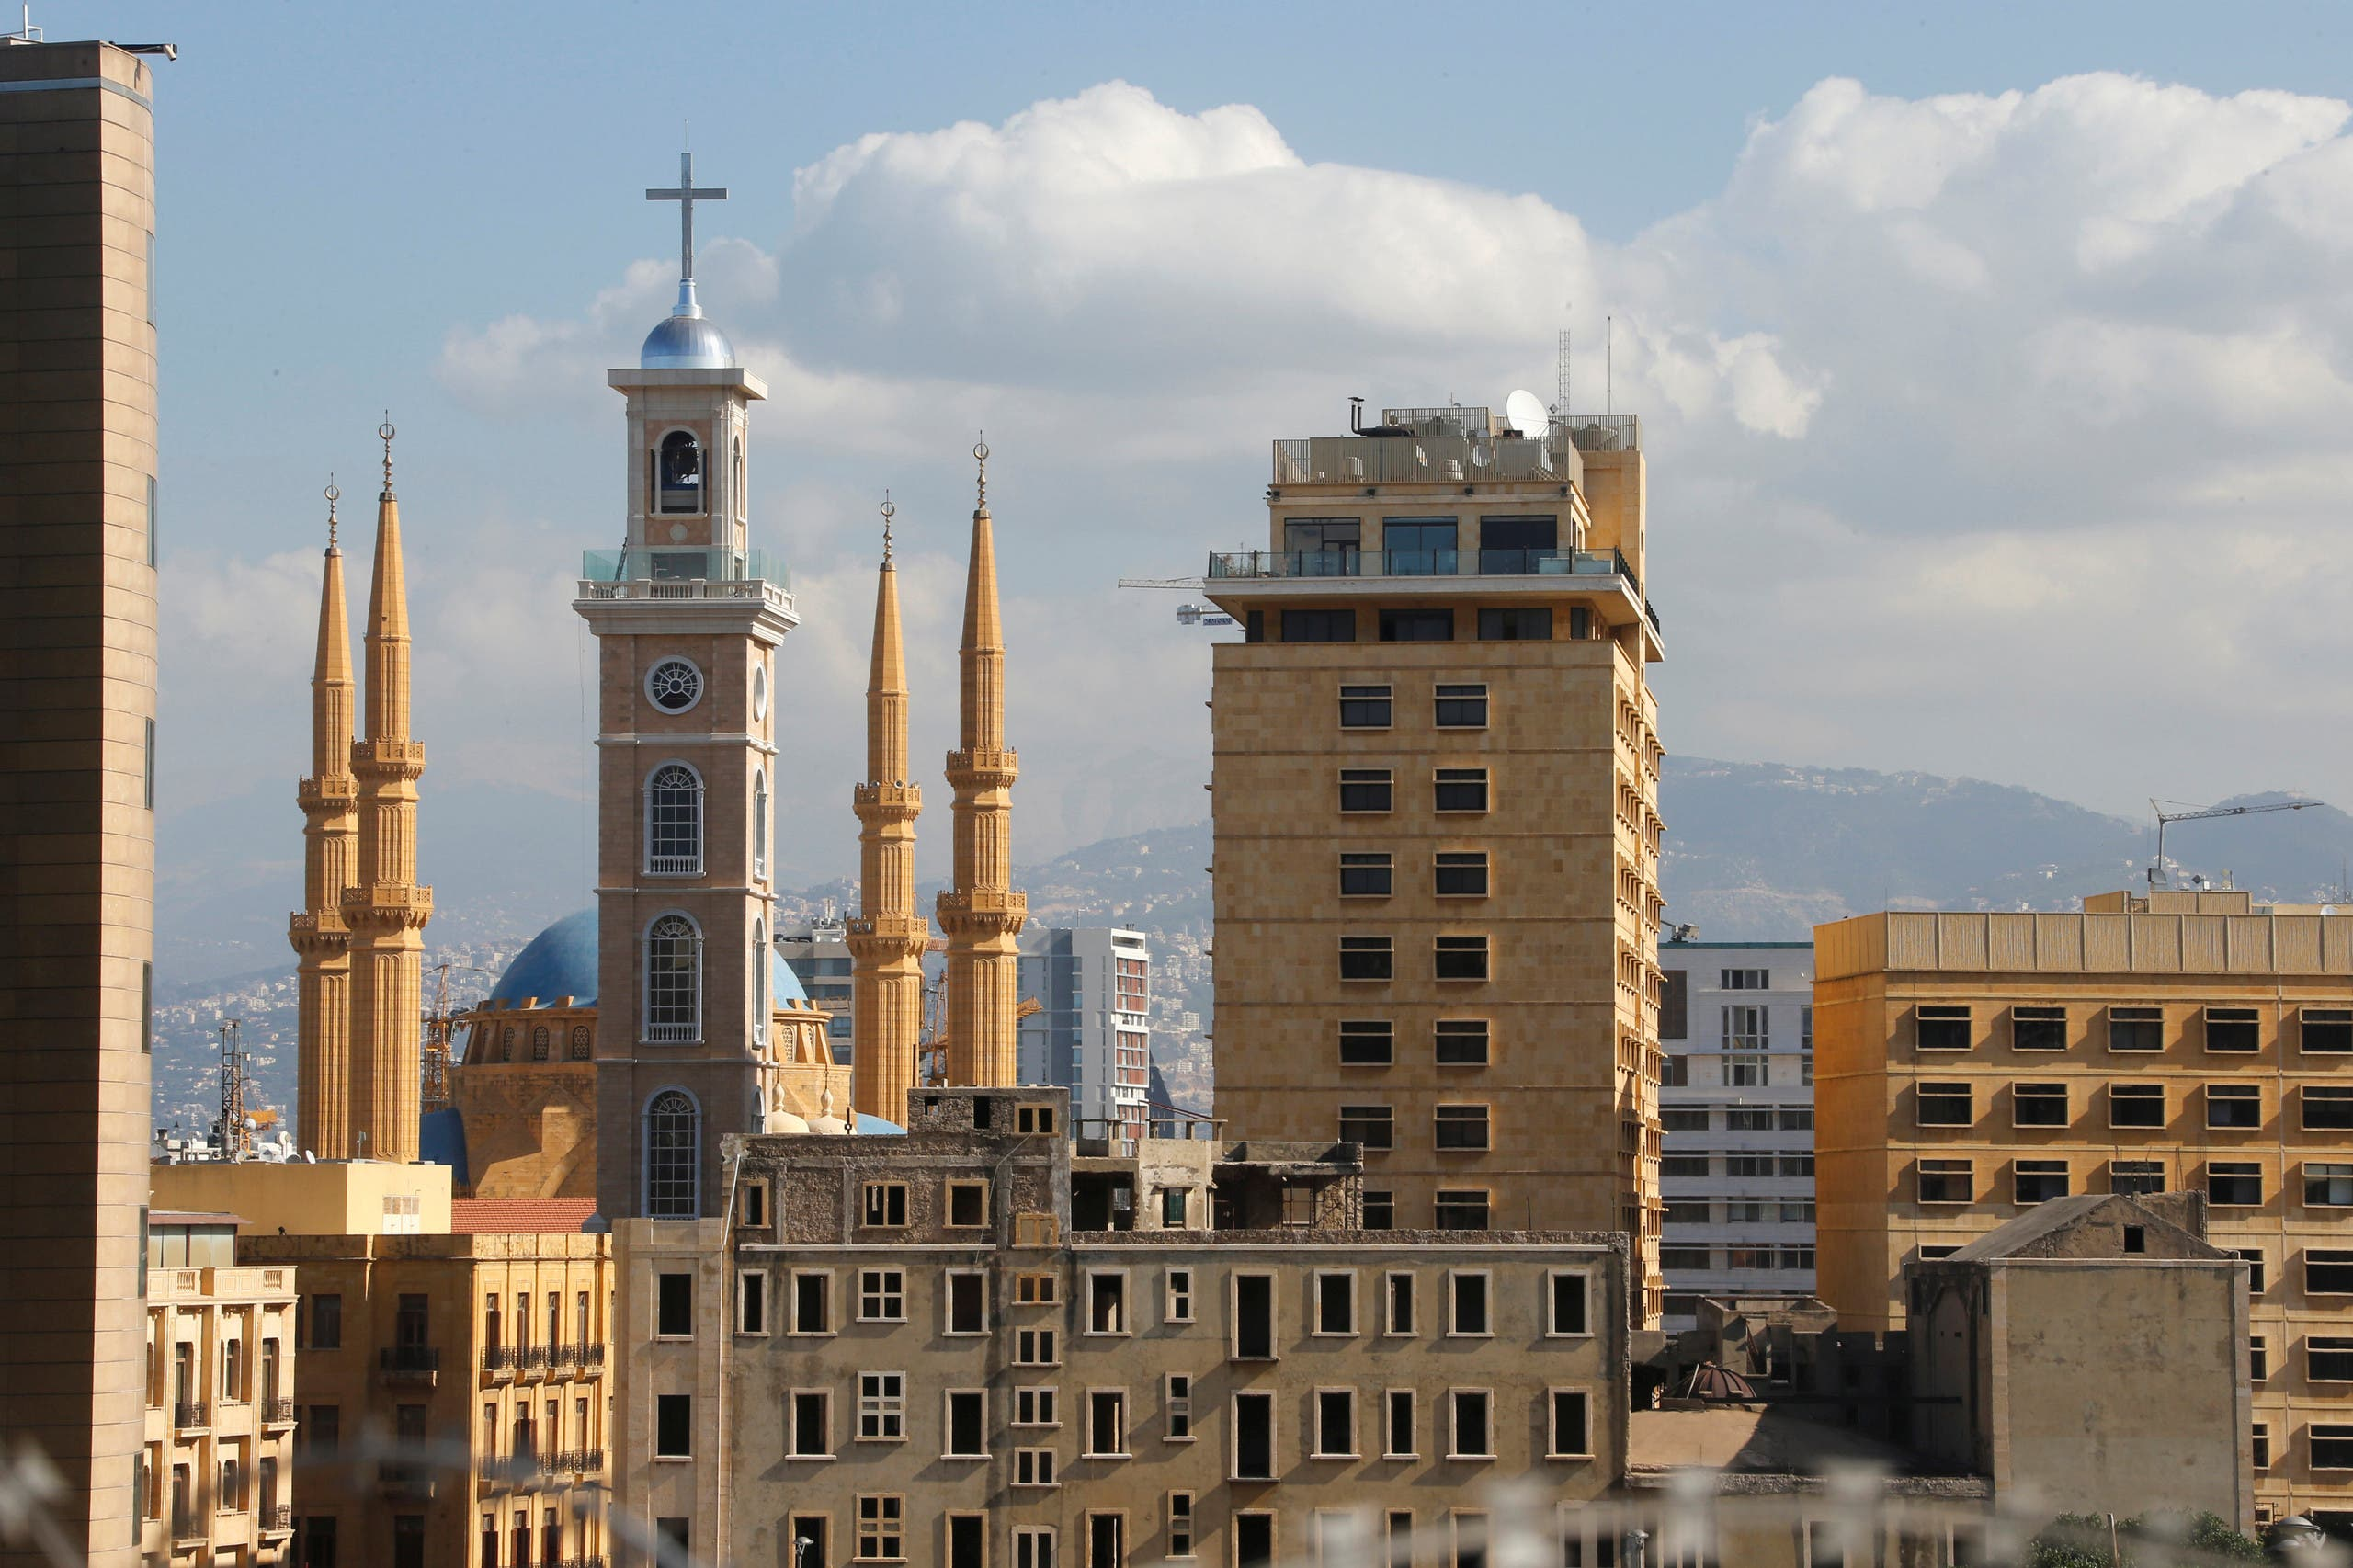 Saint George Maronite Cathedral's new bell tower is pictured near al-Amin mosque in downtown Beirut, Lebanon November 17, 2016. Picture taken November 17, 2016. REUTERS/Mohamed Azakir